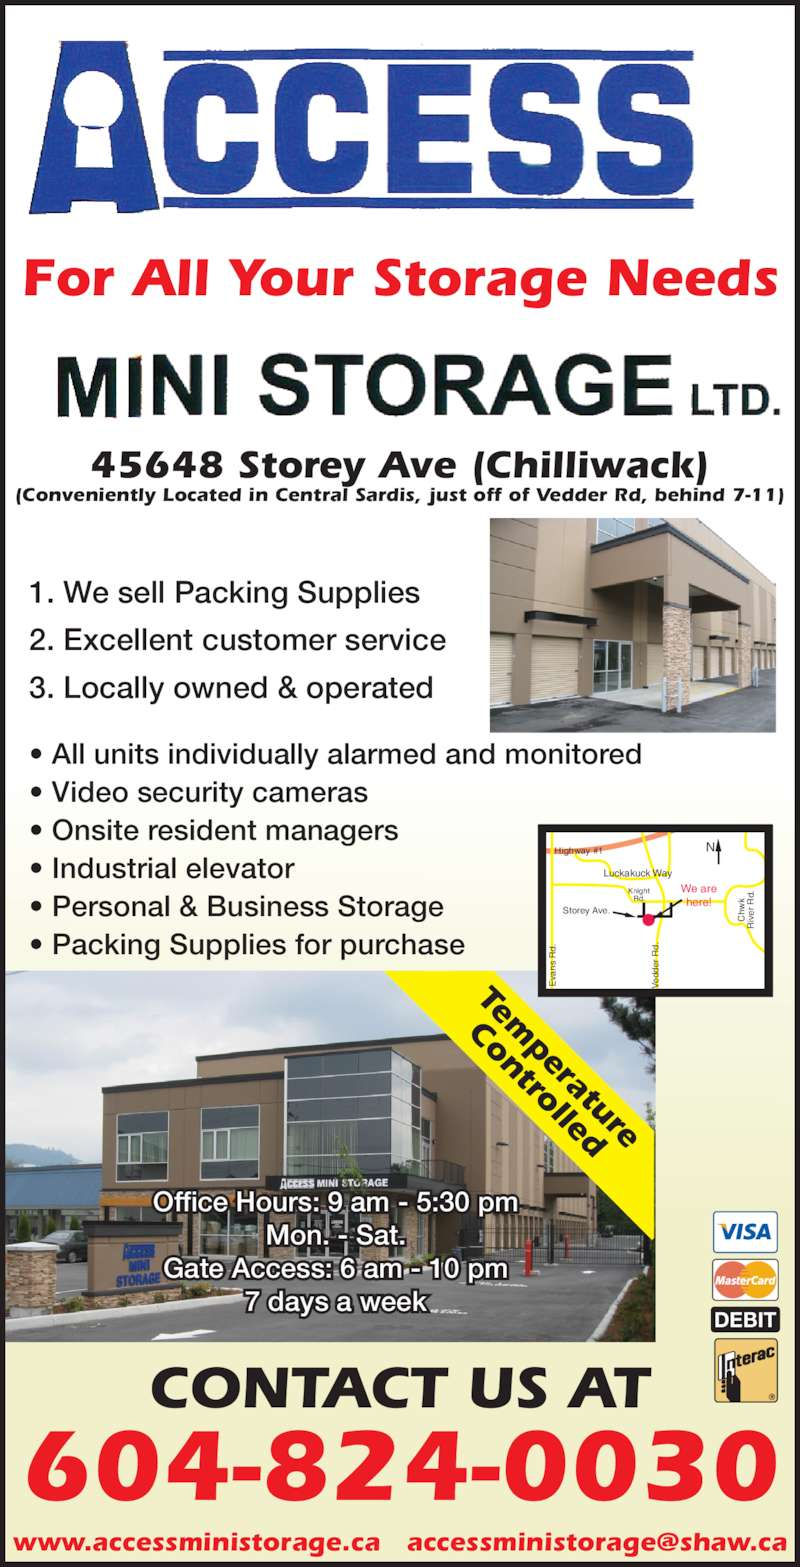 Access Mini-Storage Ltd (604-824-0030) - Display Ad - Tem perature Controlled DEBIT 604-824-0030 CONTACT US AT 1. We sell Packing Supplies 2. Excellent customer service 3. Locally owned & operated ? All units individually alarmed and monitored ? Video security cameras ? Onsite resident managers ? Industrial elevator ? Personal & Business Storage ? Packing Supplies for purchase 45648 Storey Ave (Chilliwack) (Conveniently Located in Central Sardis, just off of Vedder Rd, behind 7-11) Office Hours: 9 am - 5:30 pm Mon. - Sat. Gate Access: 6 am - 10 pm 7 days a week Knight Rd. We are here! Luckakuck Way Highway #1 Storey Ave. Ev s  d. Ve dd er  R d. Ch wk ive r  d. For All Your Storage Needs